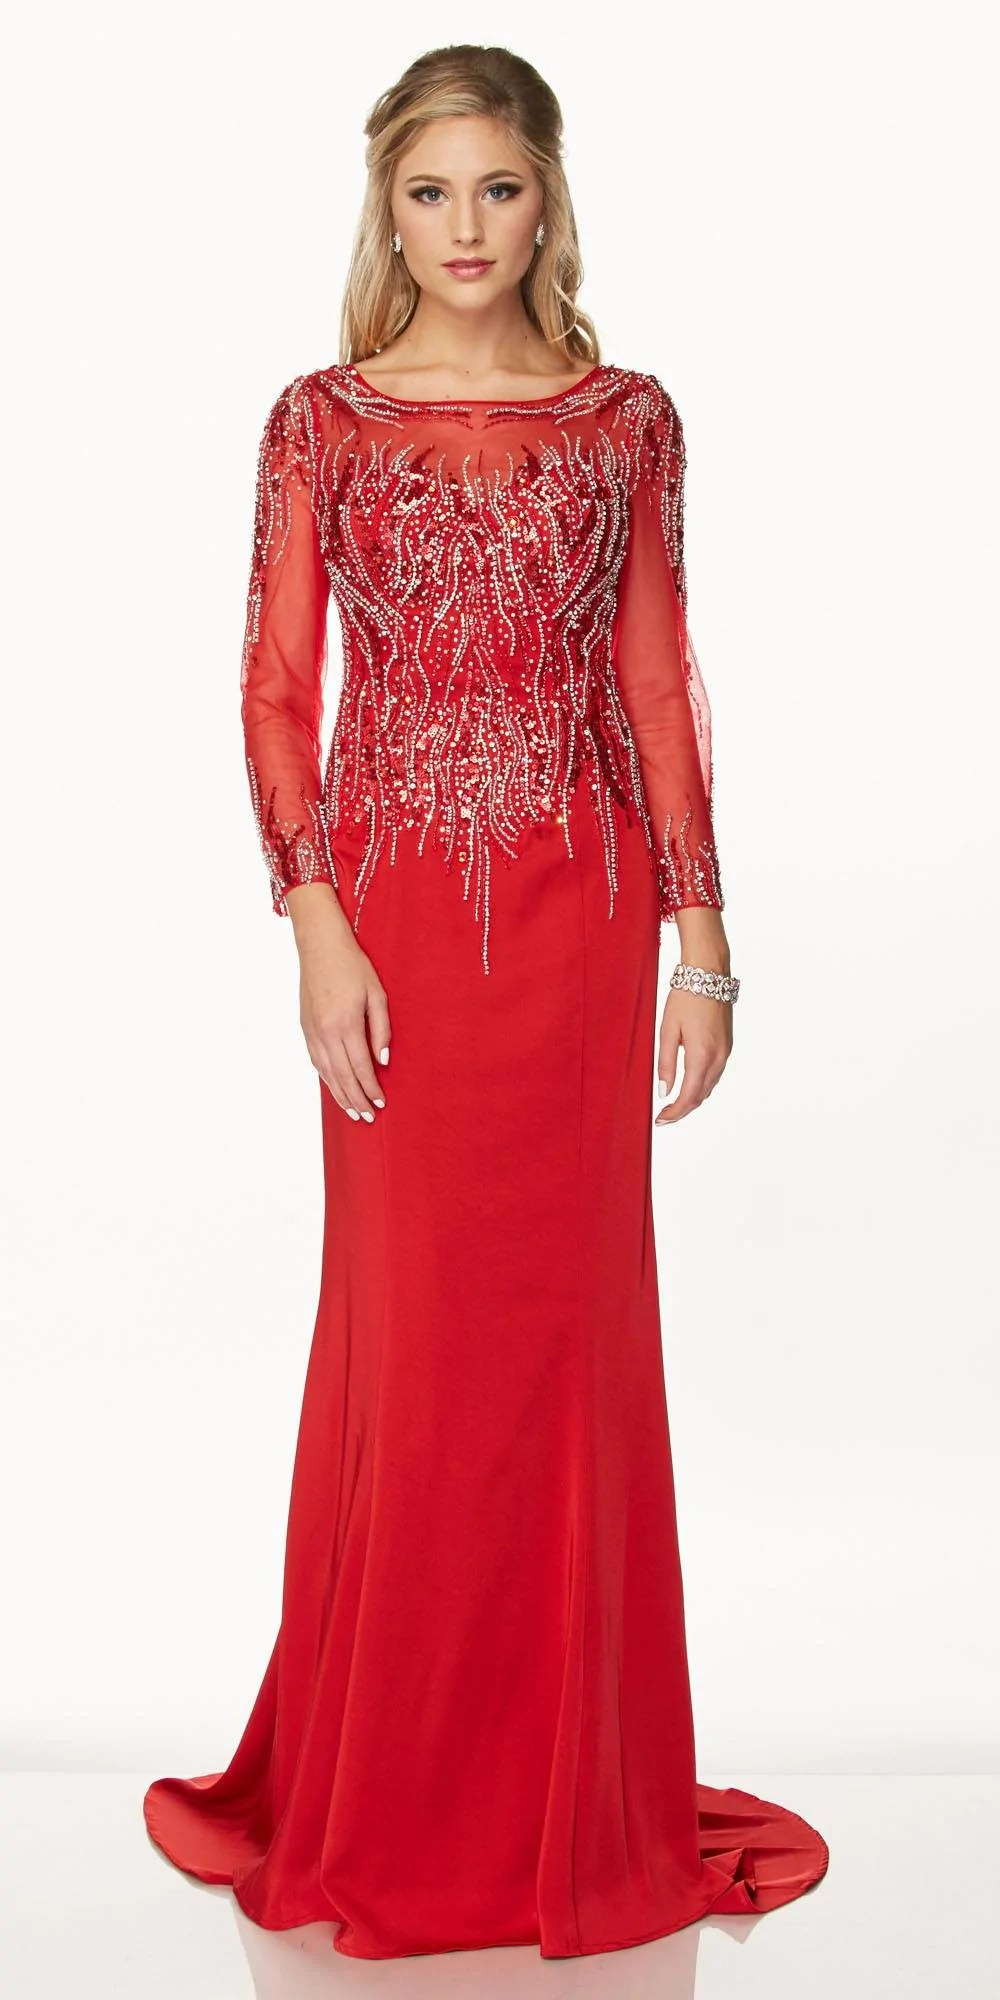 Formal Dress with Train